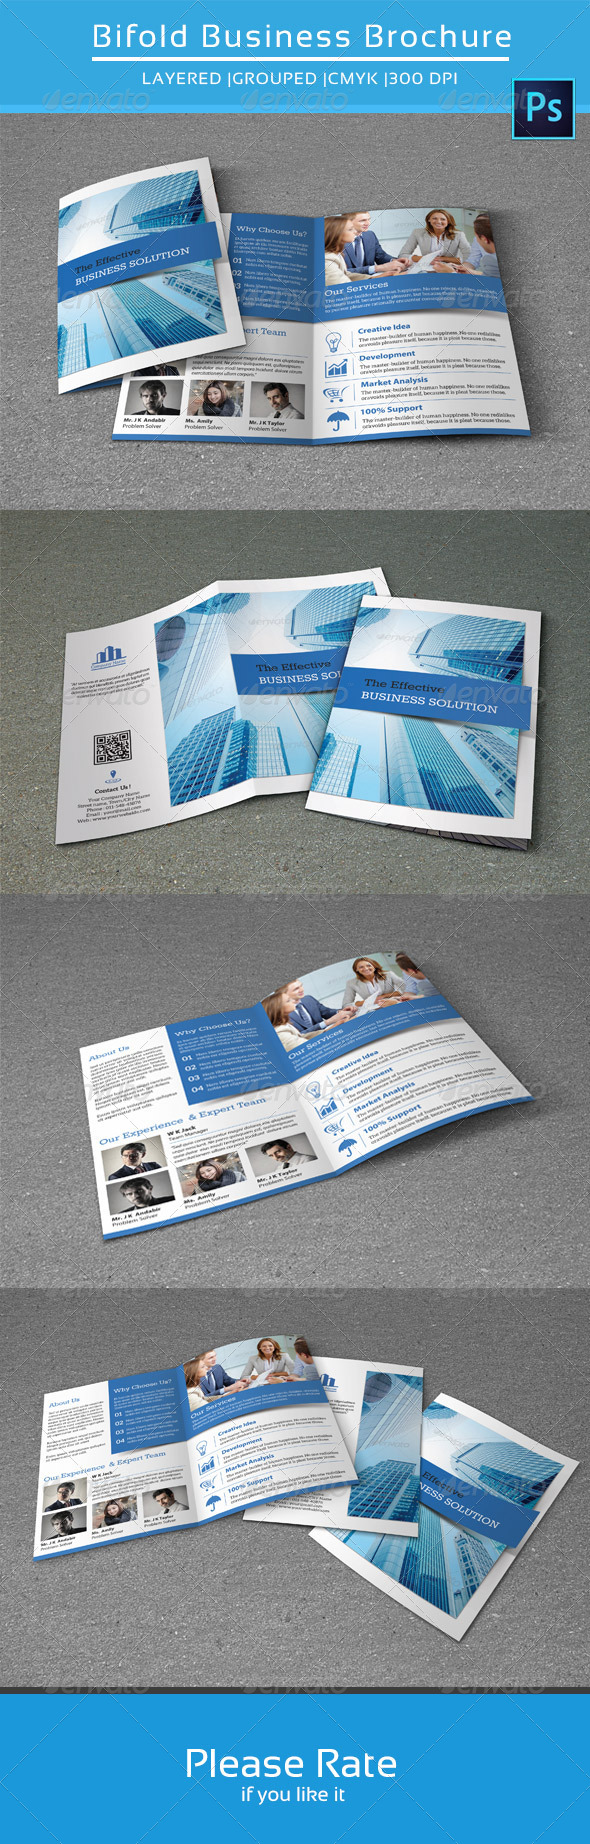 GraphicRiver Bifold Business Brochure-V114 8631530